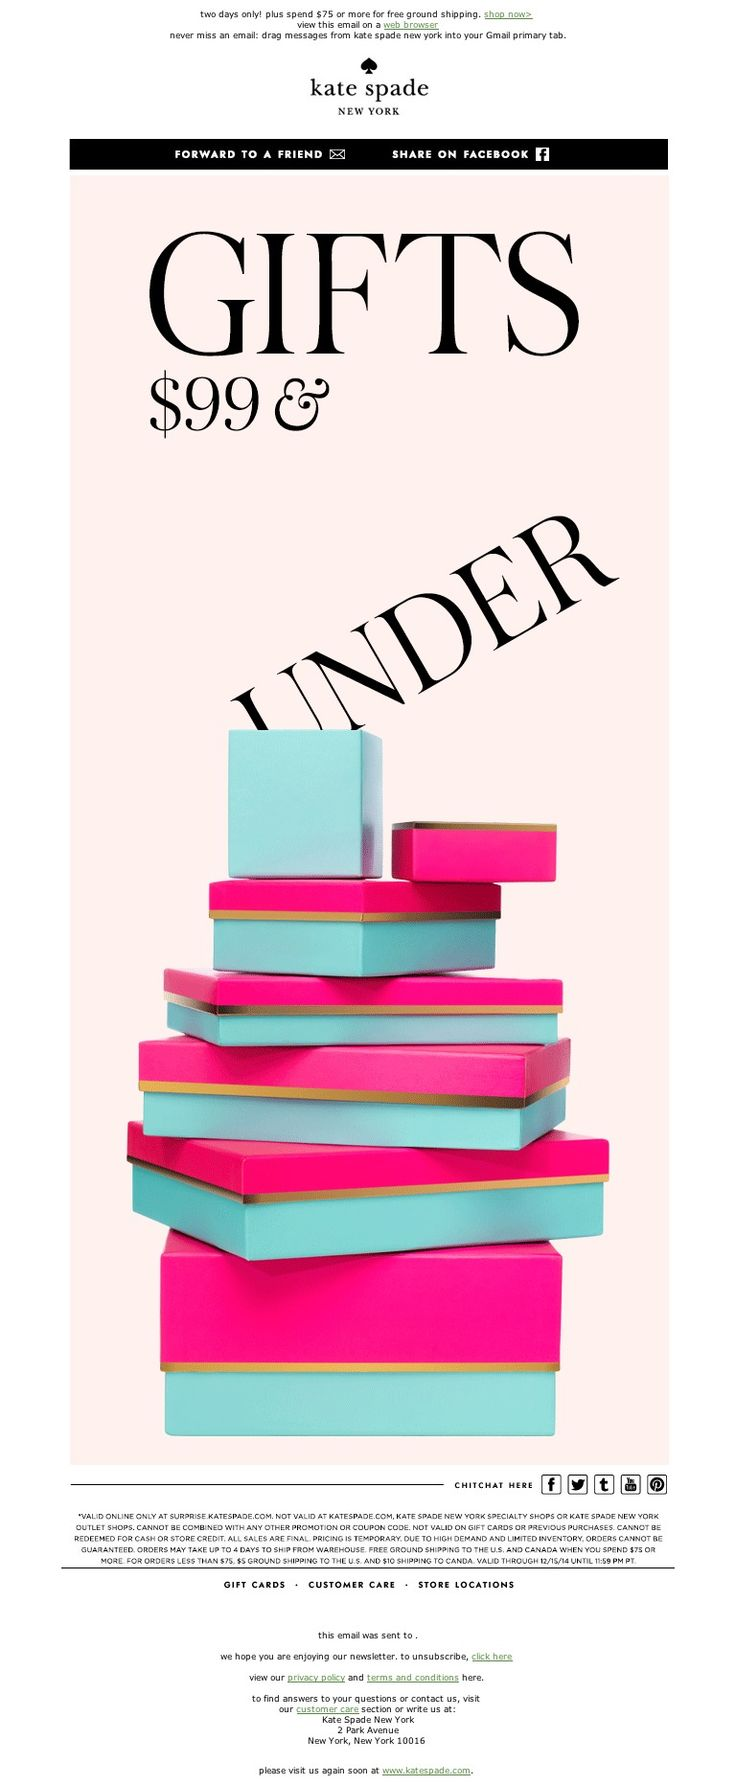 kate spade - surprise sale (gifts $99 and under) starts now...